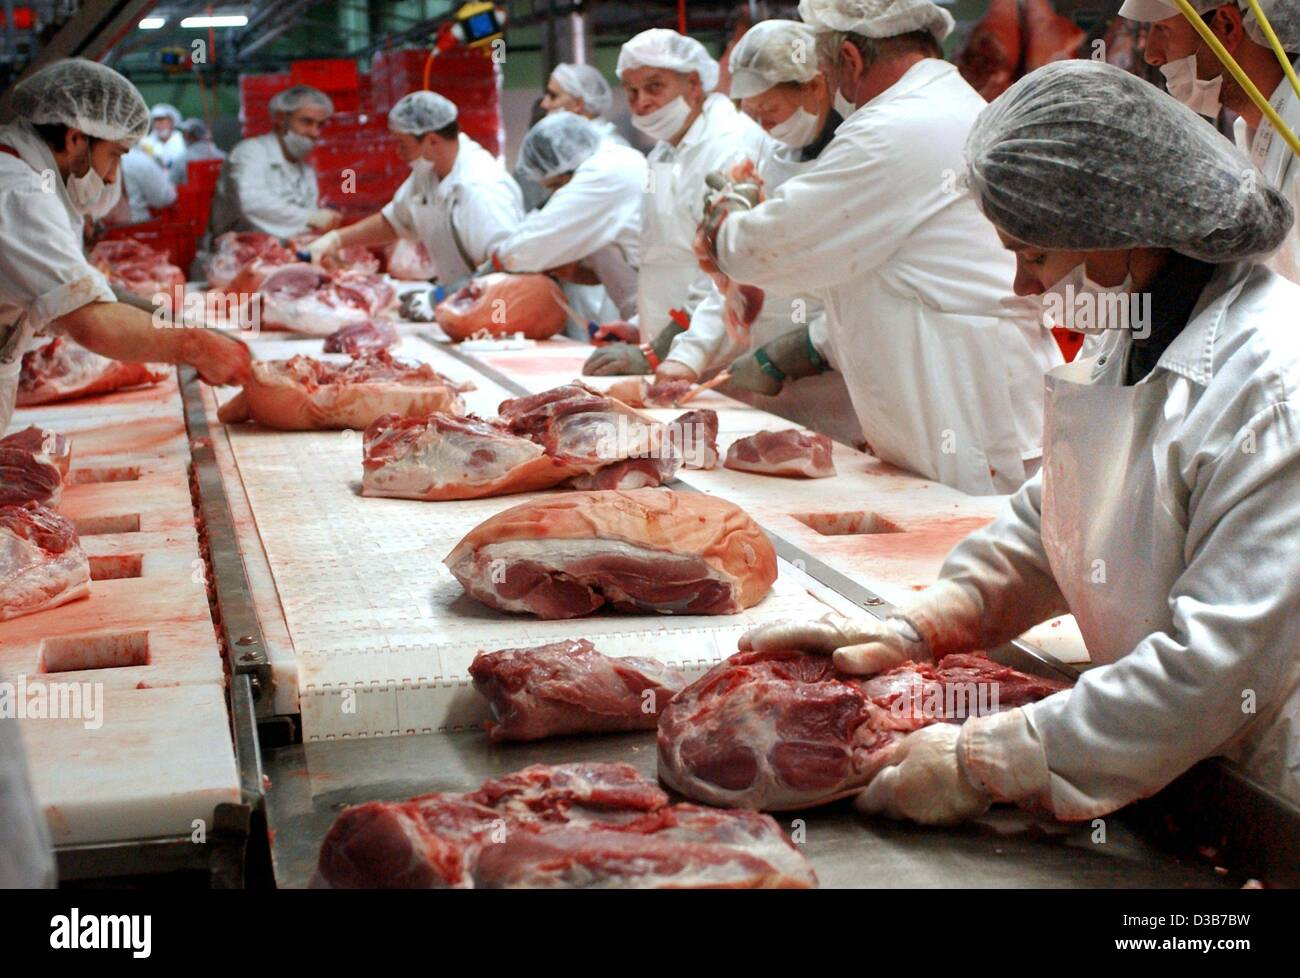 (dpa) - Butchers cut pork meat at a production line at the Suedost Fleisch company in Altenburg, Germany, 11 December - Stock Image